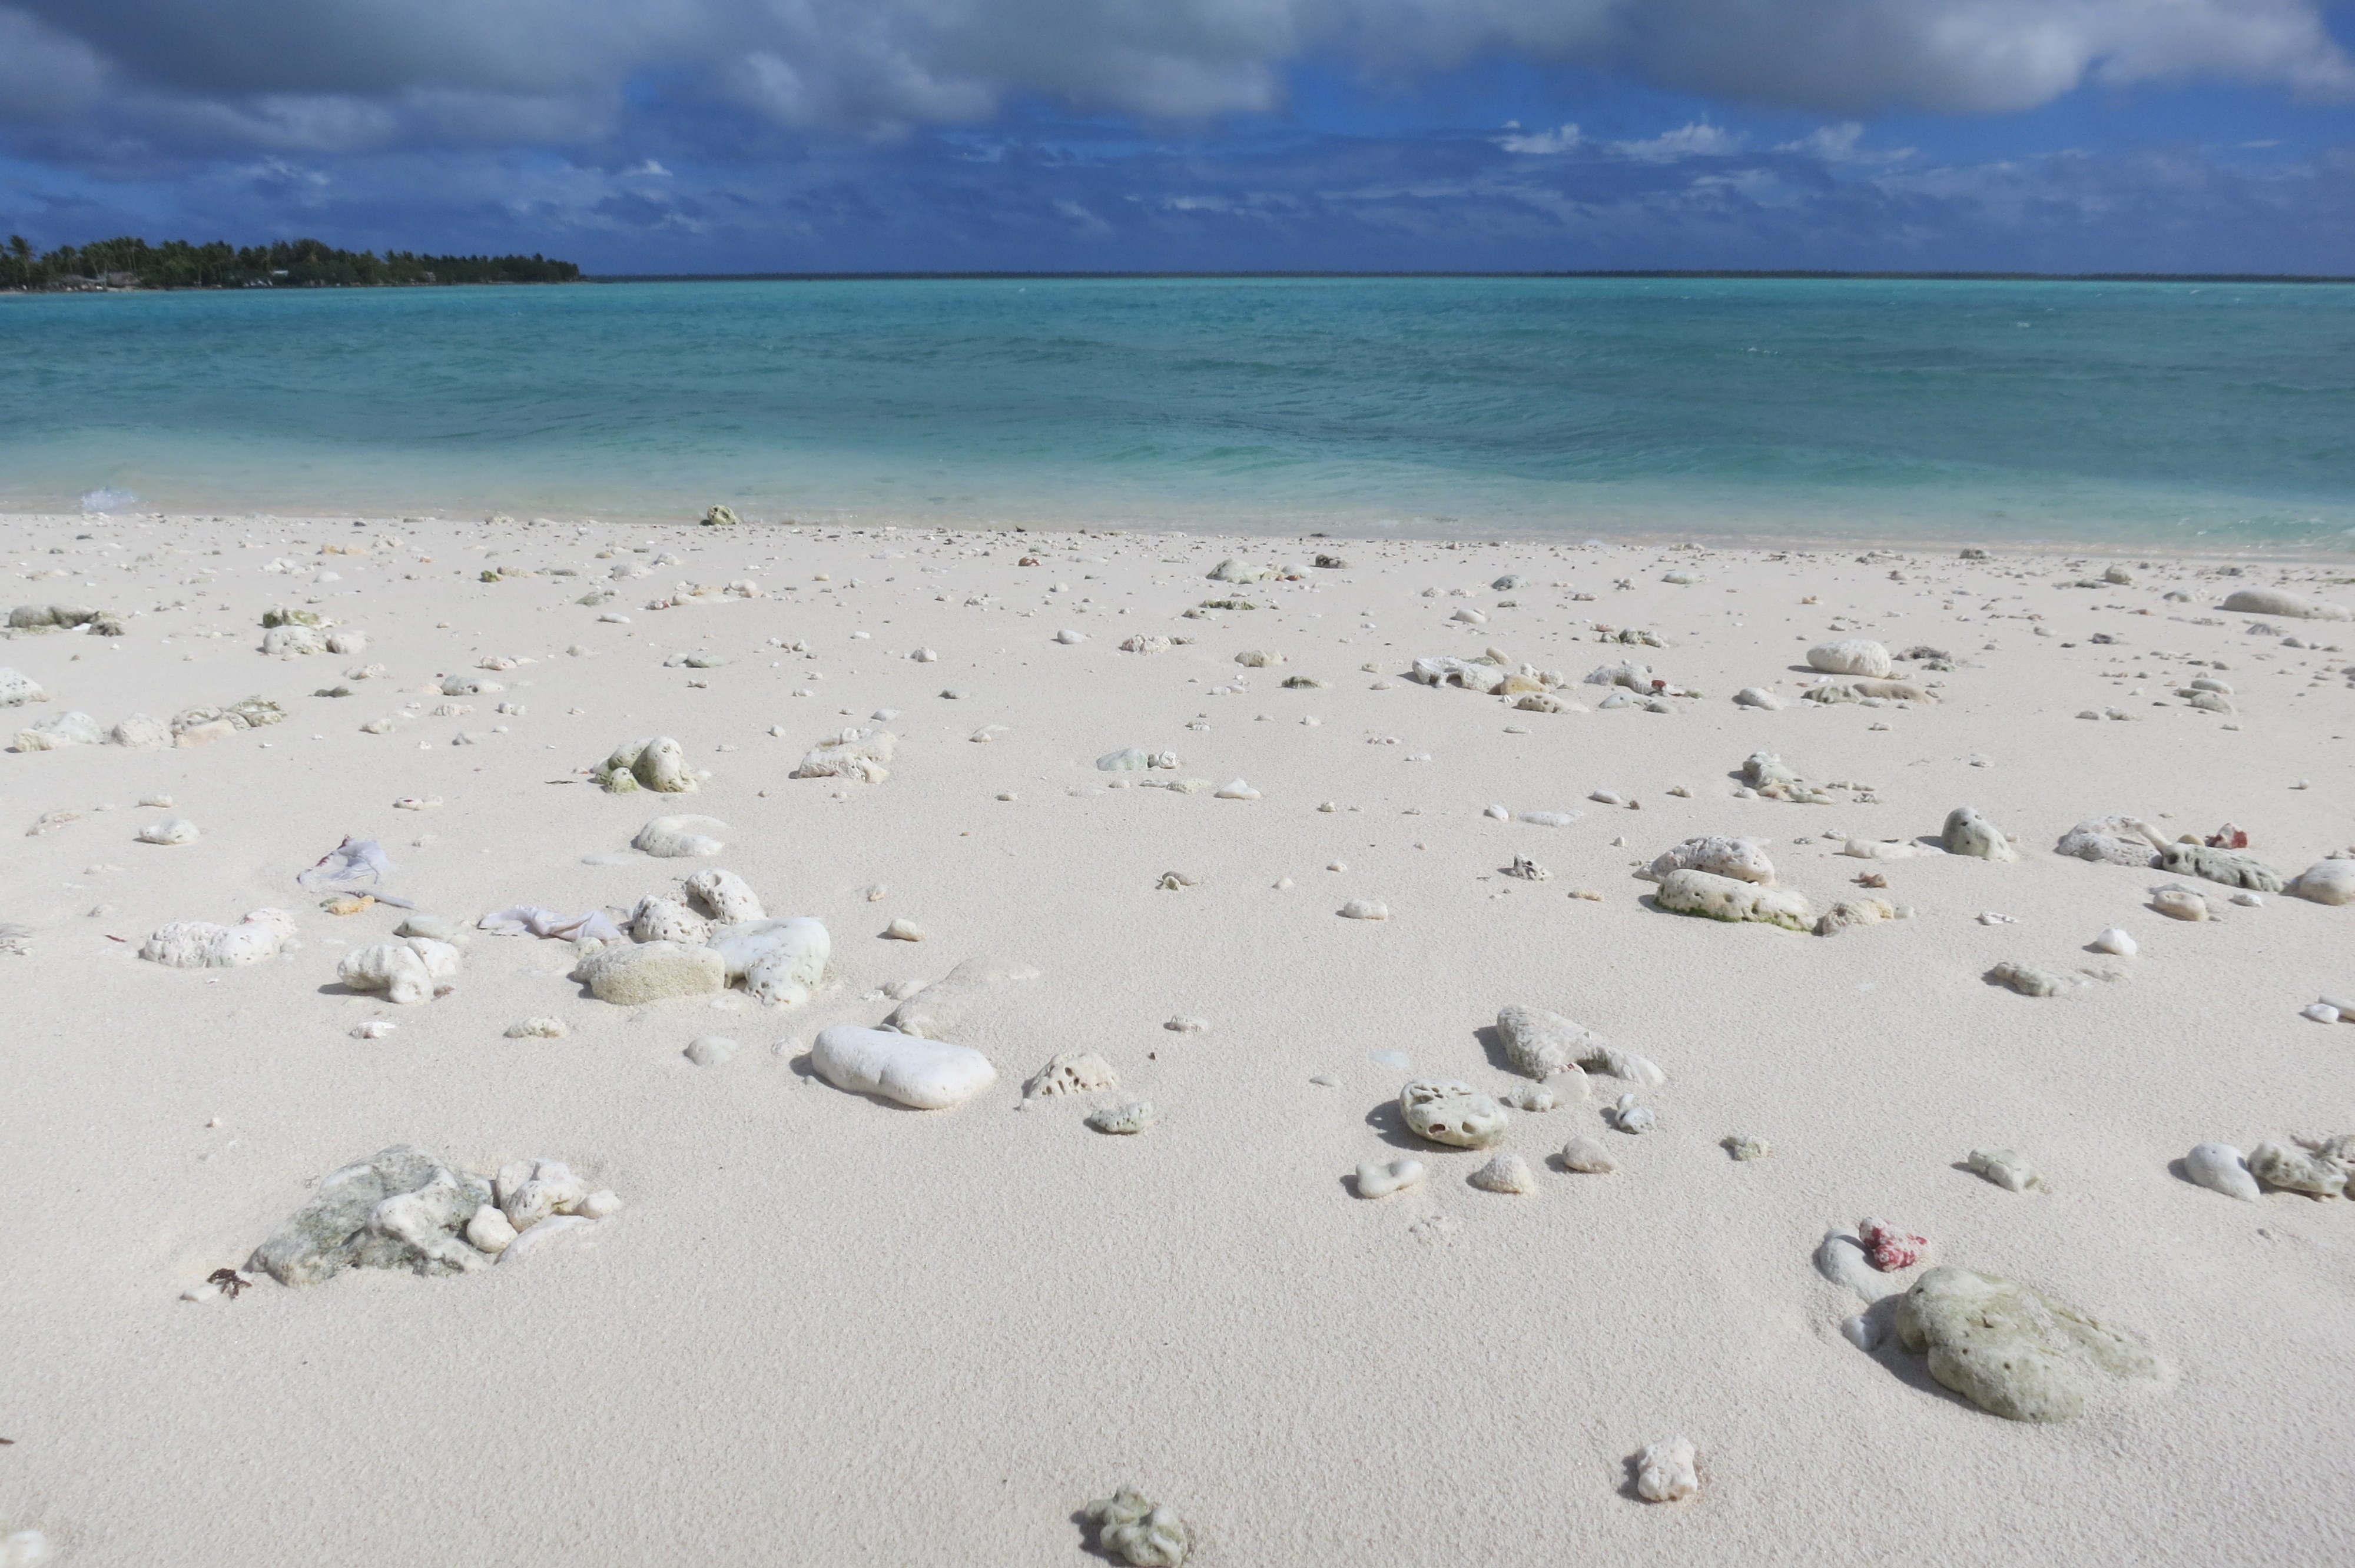 Kiritimati: the Other Christmas Island